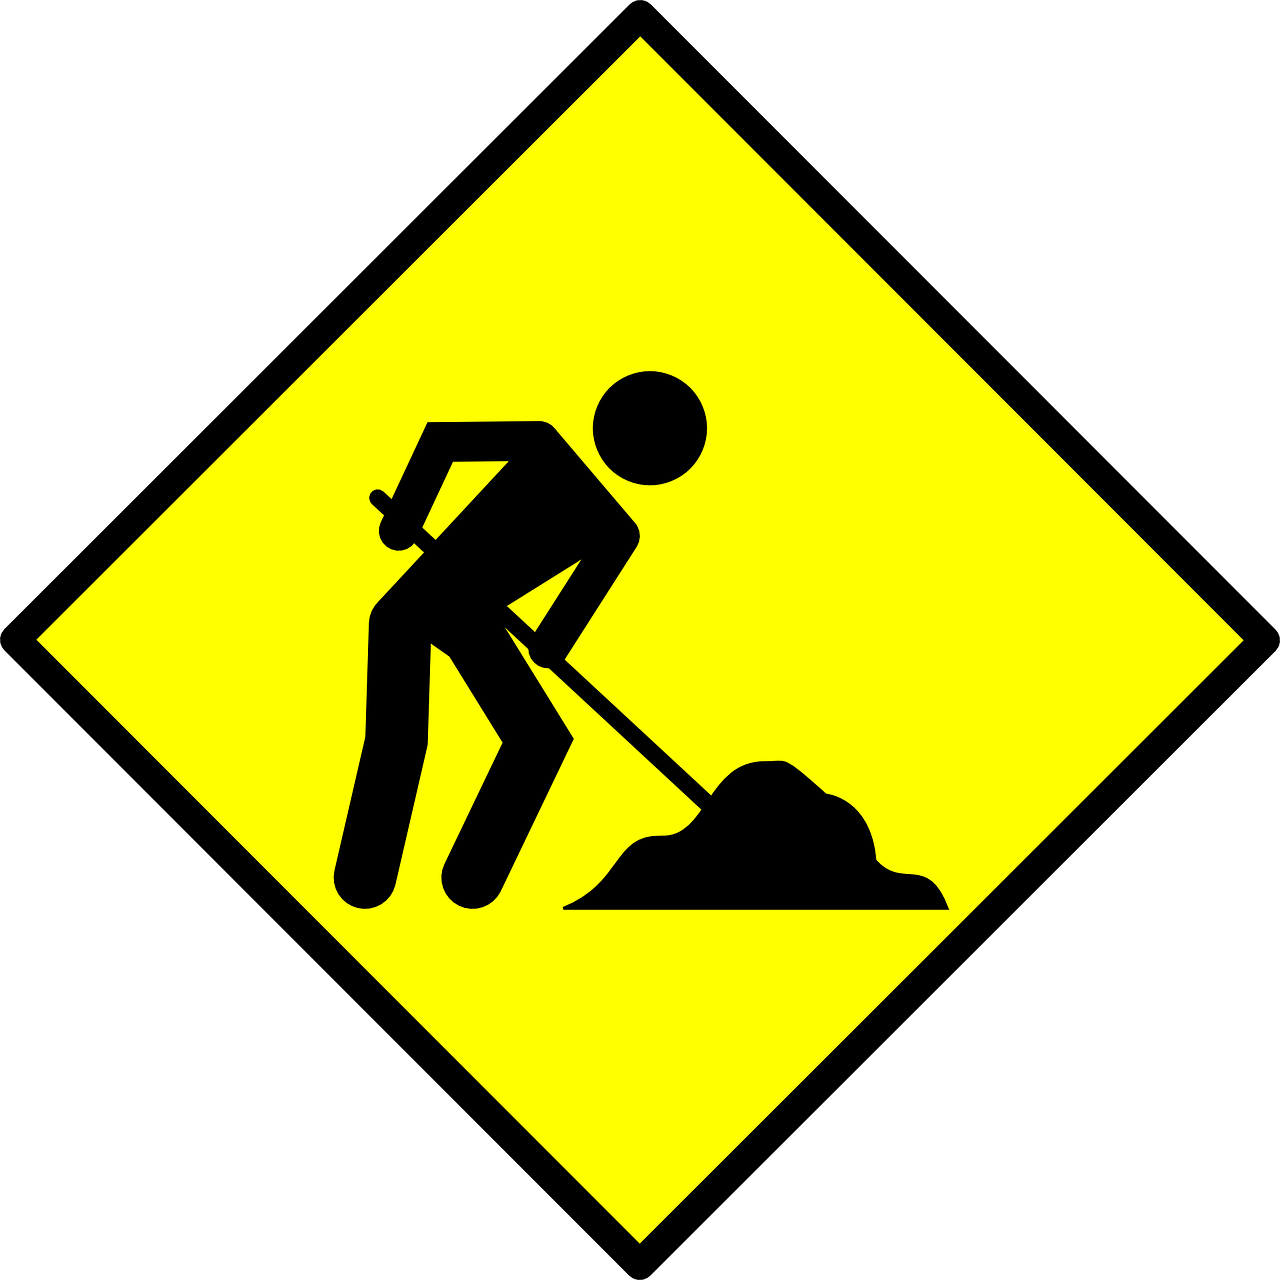 Buckrail . Clipart road road repair